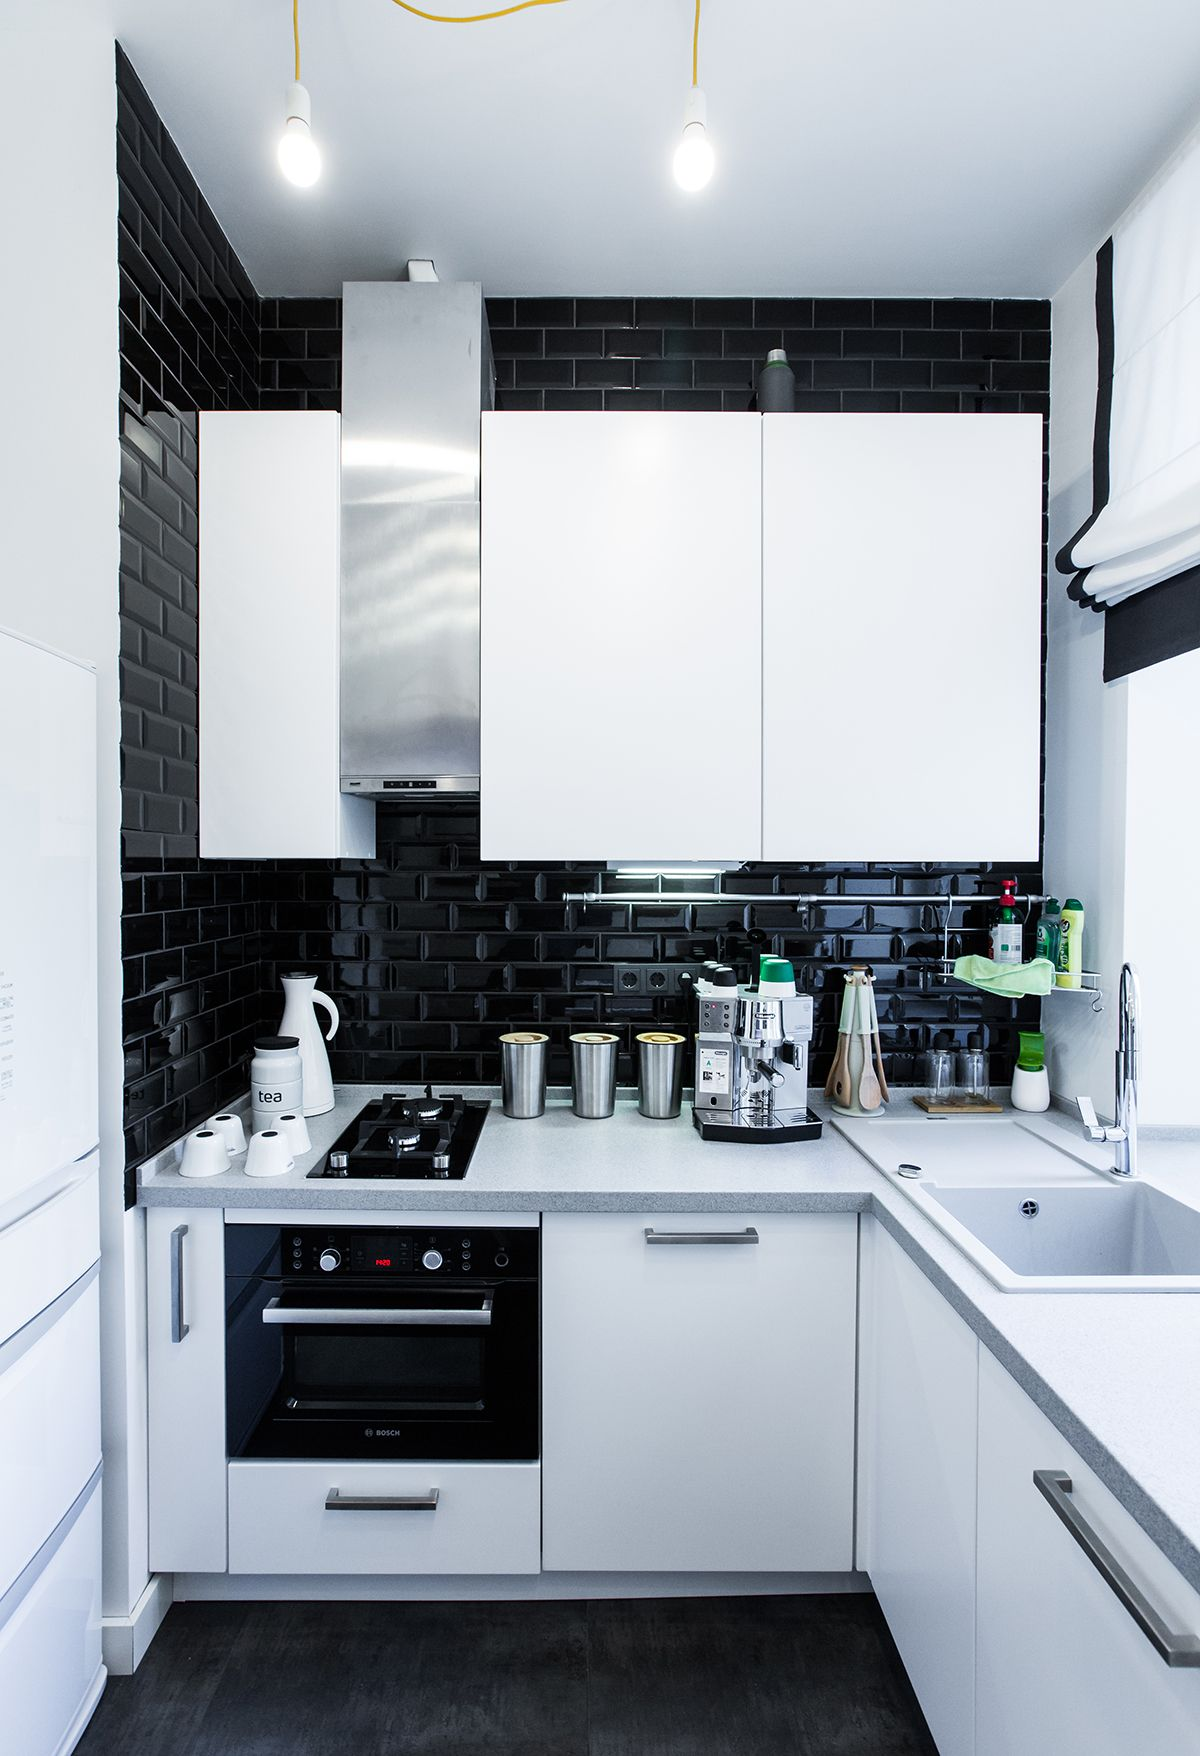 small modern kitchen design apartment with black white color kitchen